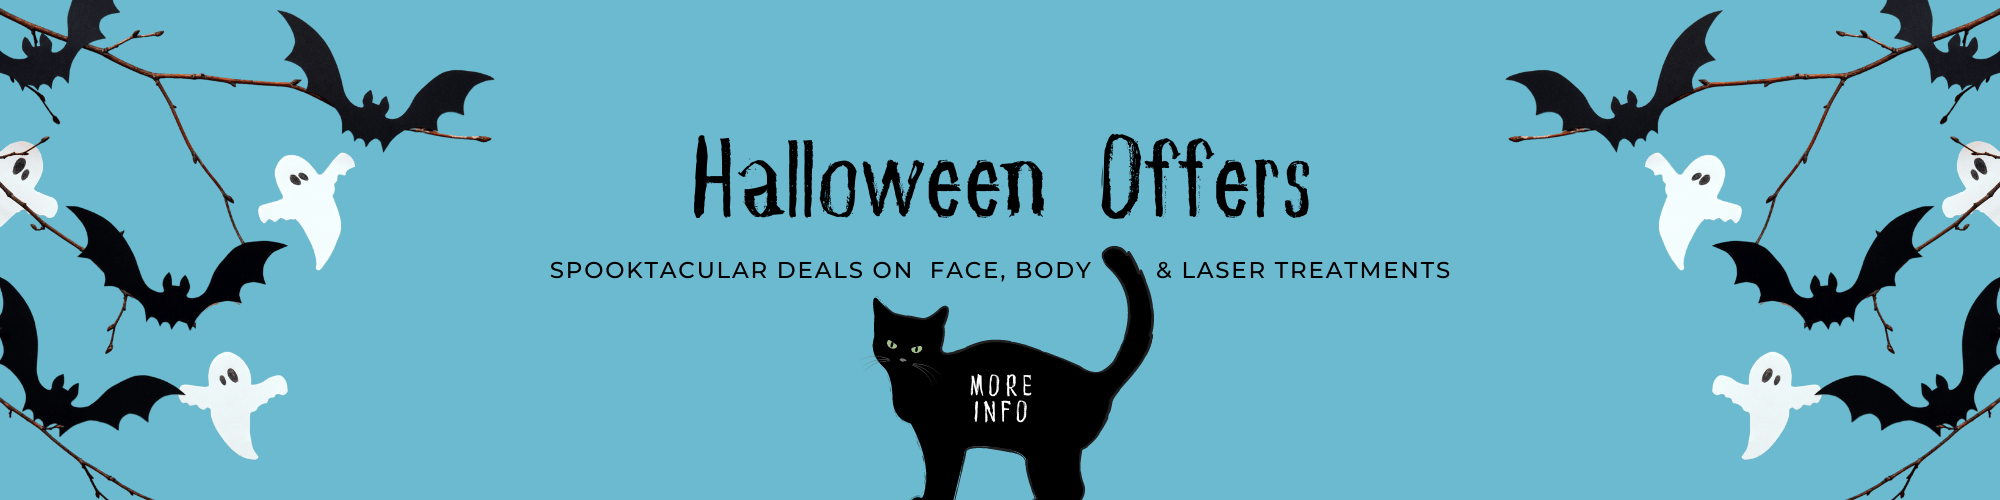 Black cat on blue background with sign Halloween Offers